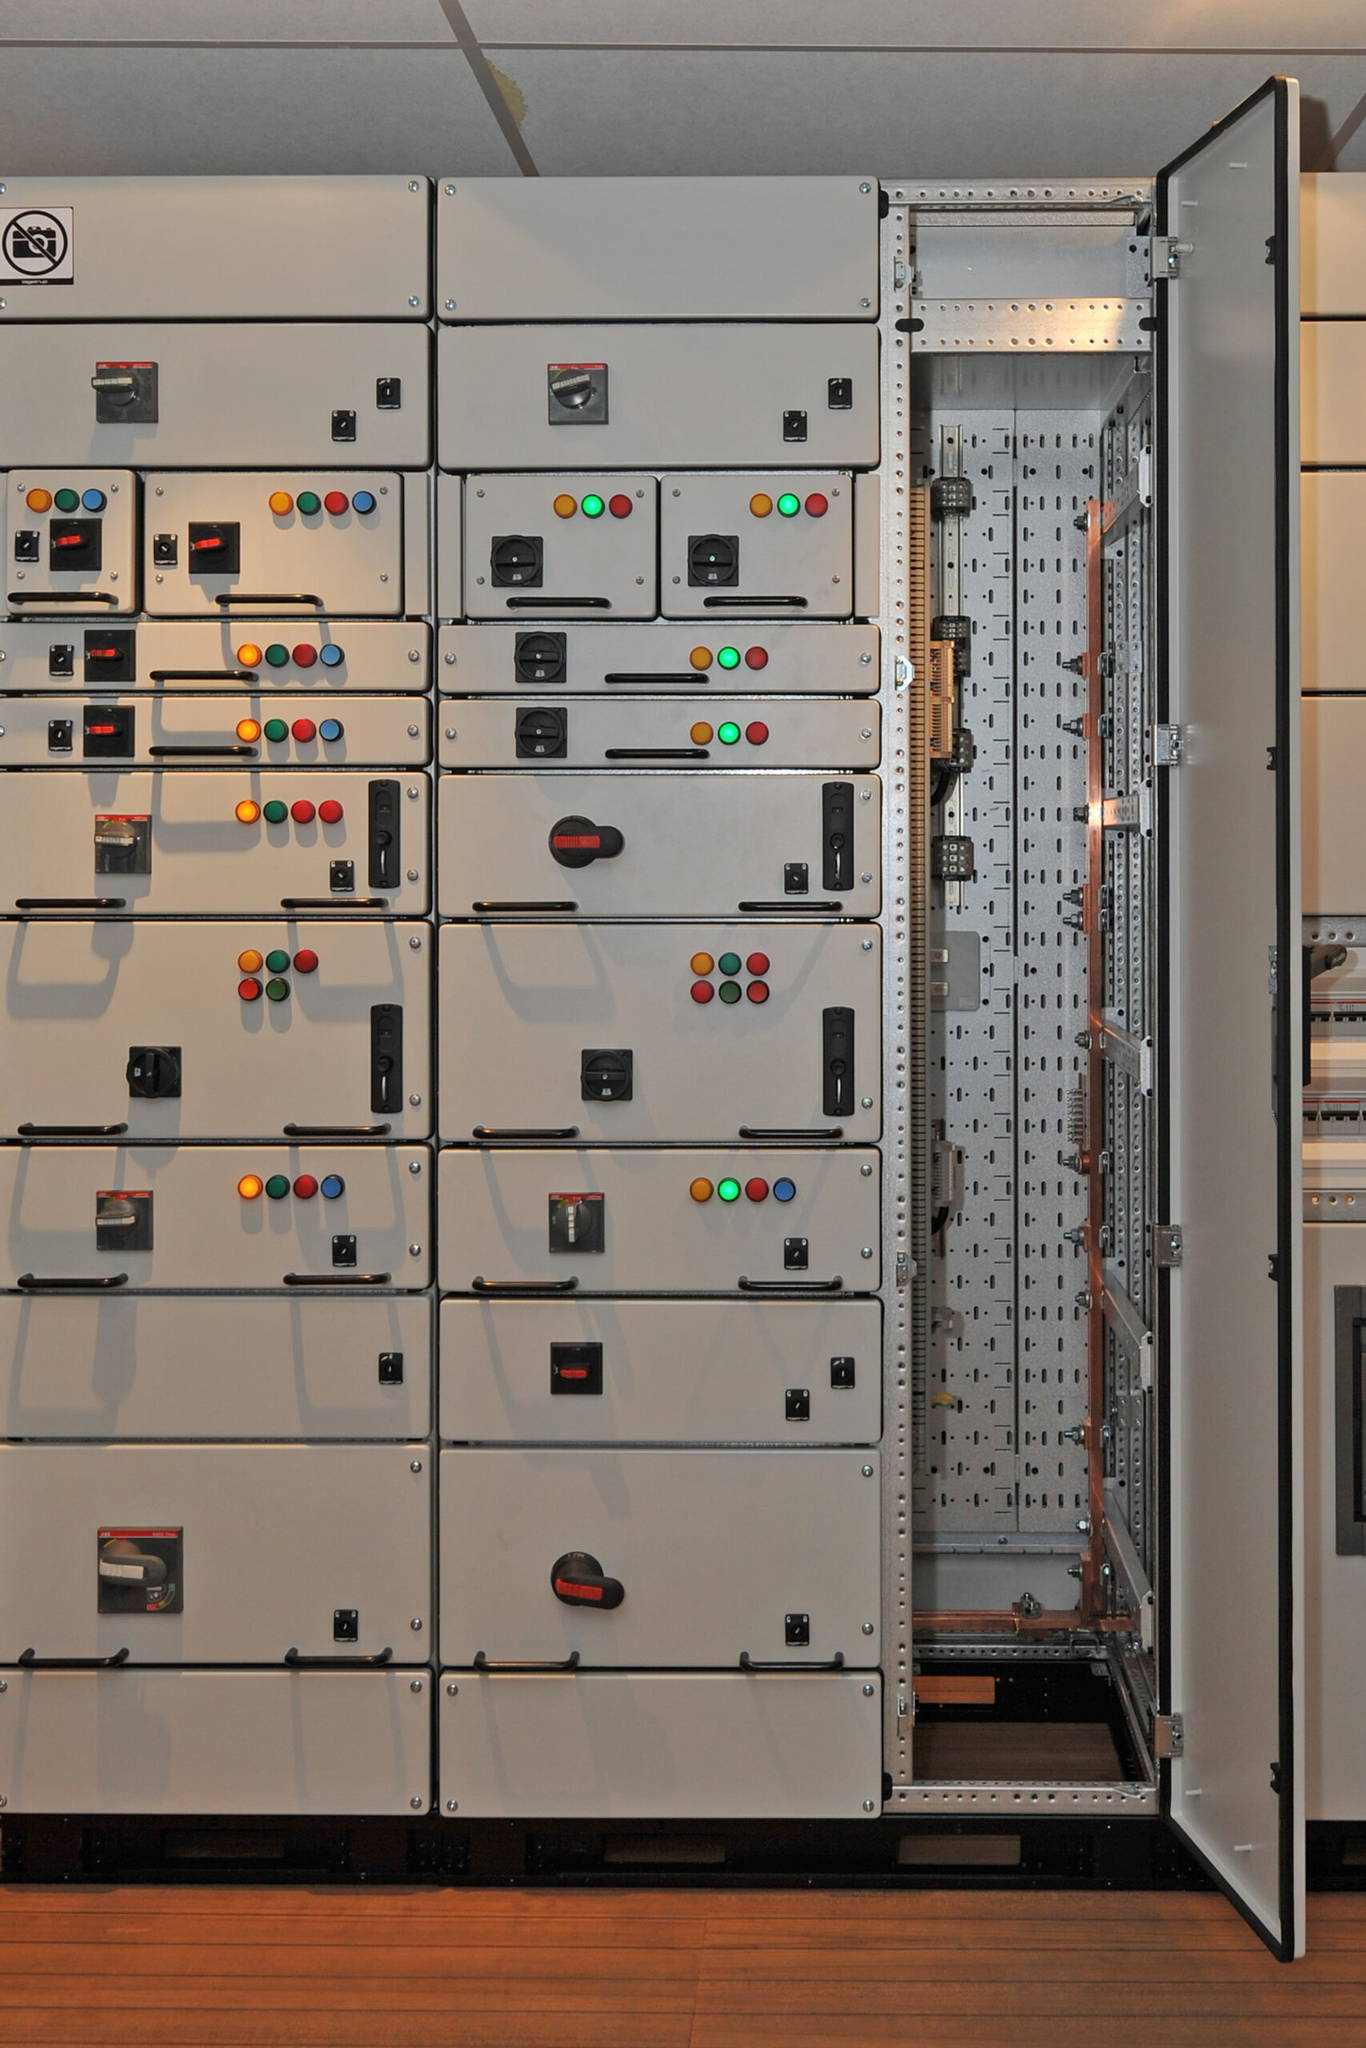 Logstrup is a manufacturer of low voltage electrical Switchgear components such as Withdrawable units